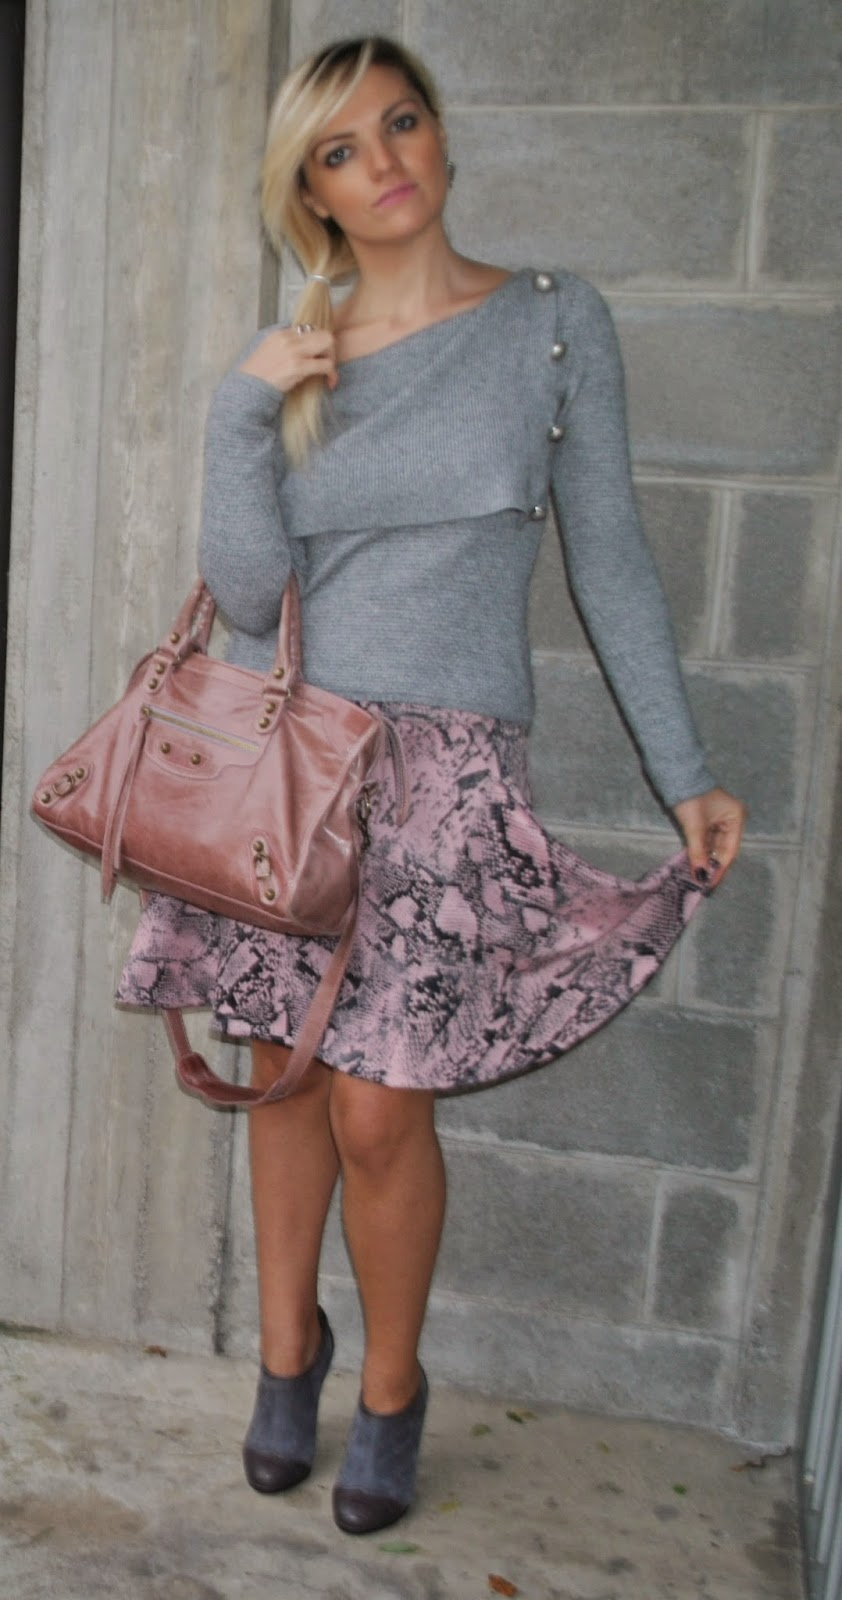 outfit gonna rosa in neoprene con stampa pitone maglione grigio marella orecchini breil anello breil scarpe grigiie in camoscio e pelle danilo di lea borsa rosa antico balenciaga how to wear pink skirt abbinamenti gonna rosa abbinamenti maglione grigio how to wear gray abbinamenti rosa e grigio come abbinare rosa e grigio how to wear gray and pink how to combine gray and pink gonna rosa stampa pitone stampa pitone outfit novembre 2014 outfit autunnali mariafelicia magno mariafelicia magno fashion blogger colorblock by felym outfit mariafelicia magno fashion blogger italiane fashion blogger bionde ragazze bionde coda laterale acconciatura coda laterale scarpe francesine outfit scarpe francesine come abbinare le francesine  neoprene pink skirt grey sweater autumnal outfit how to wear pink how to wear grey pink balenciaga bag pyton print fashion bloggers italy